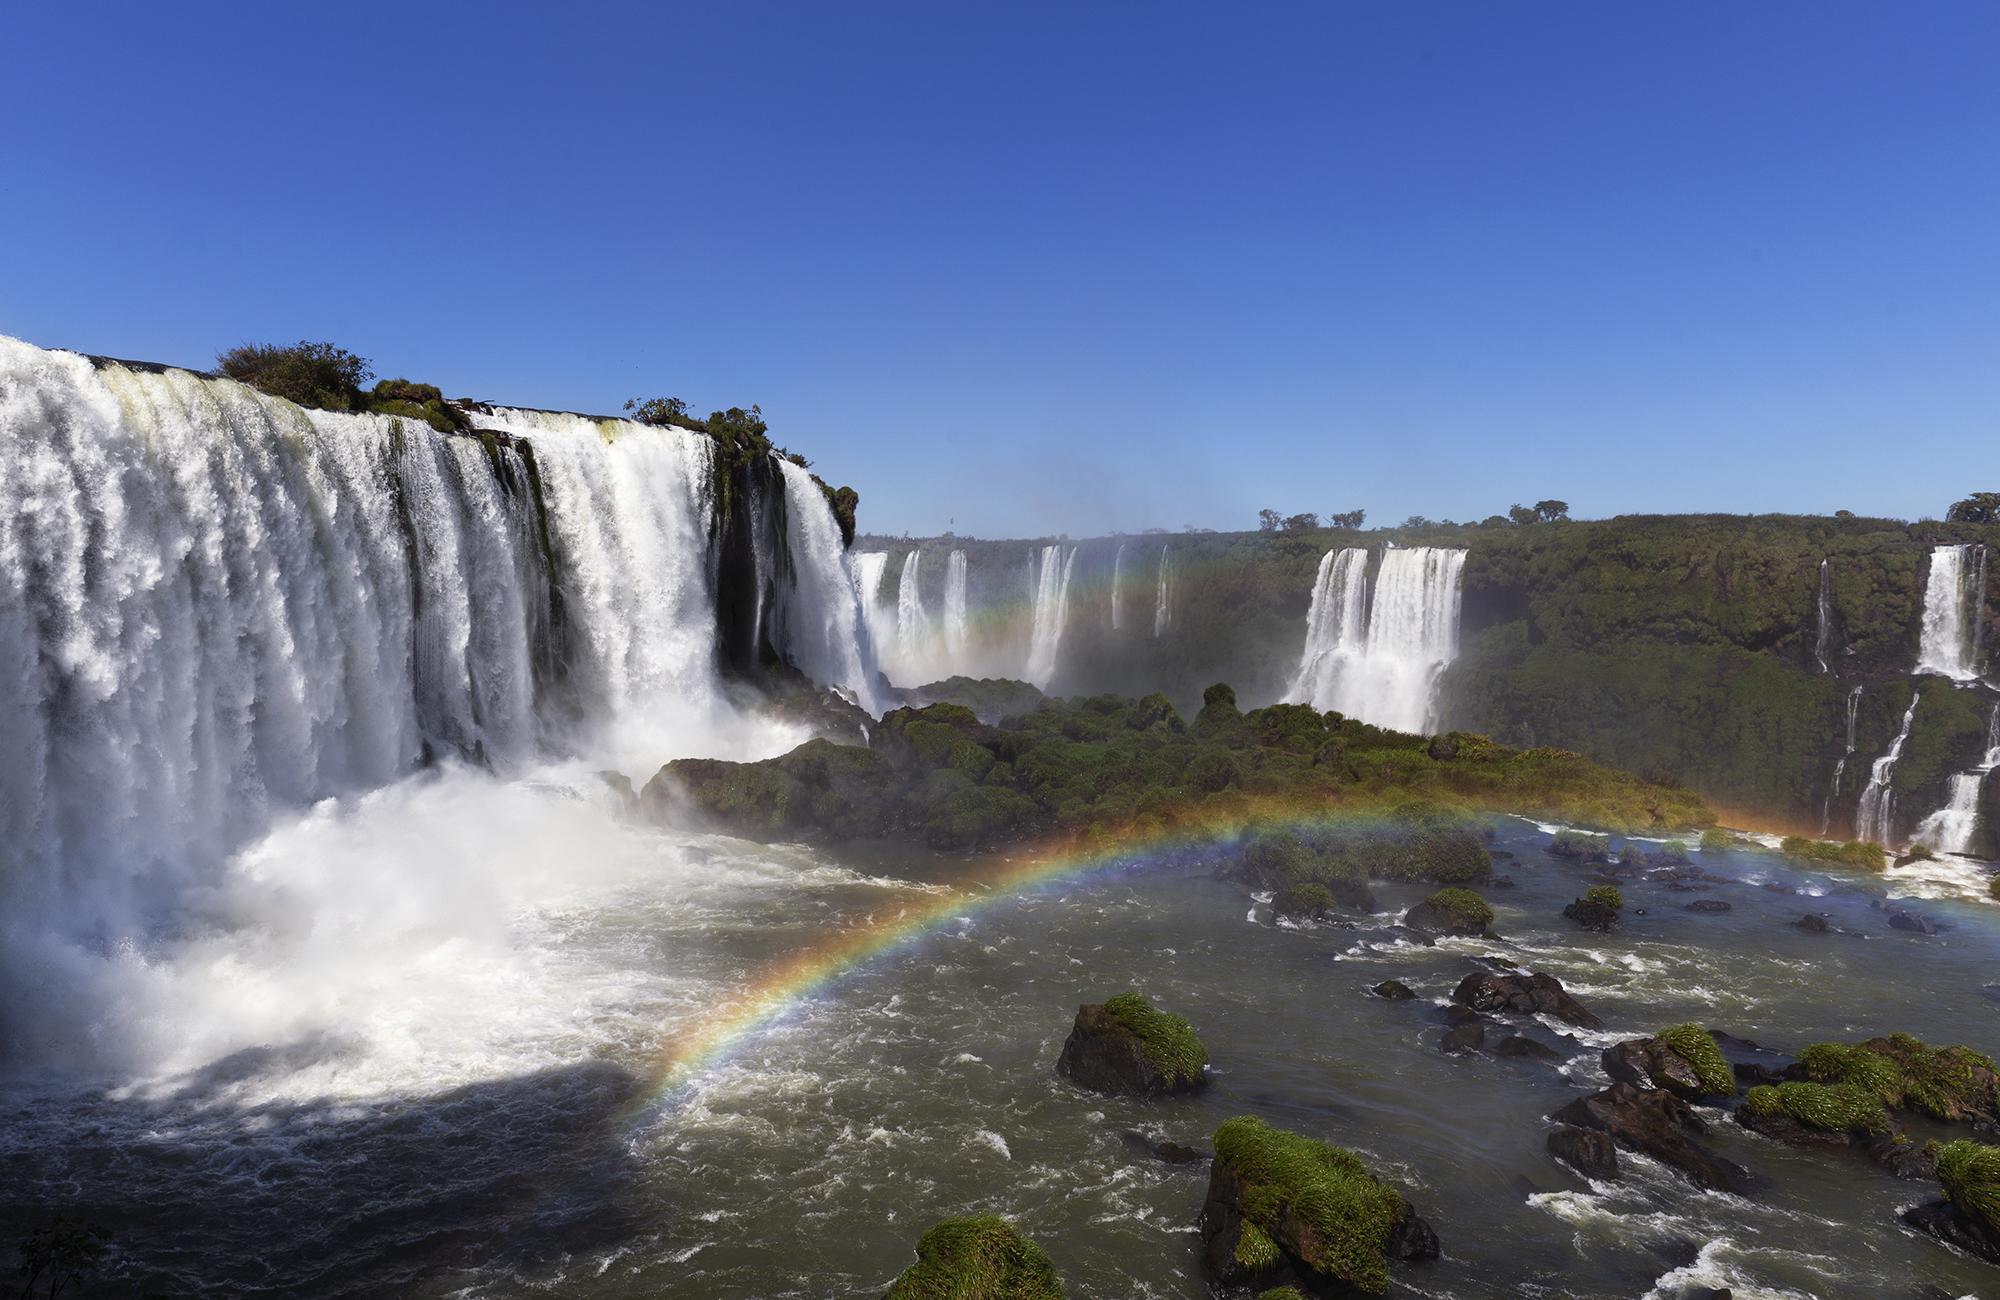 Iguaçu Falls 101: Everything You Need to Know About Visiting the Most Beautiful Waterfall on Earth